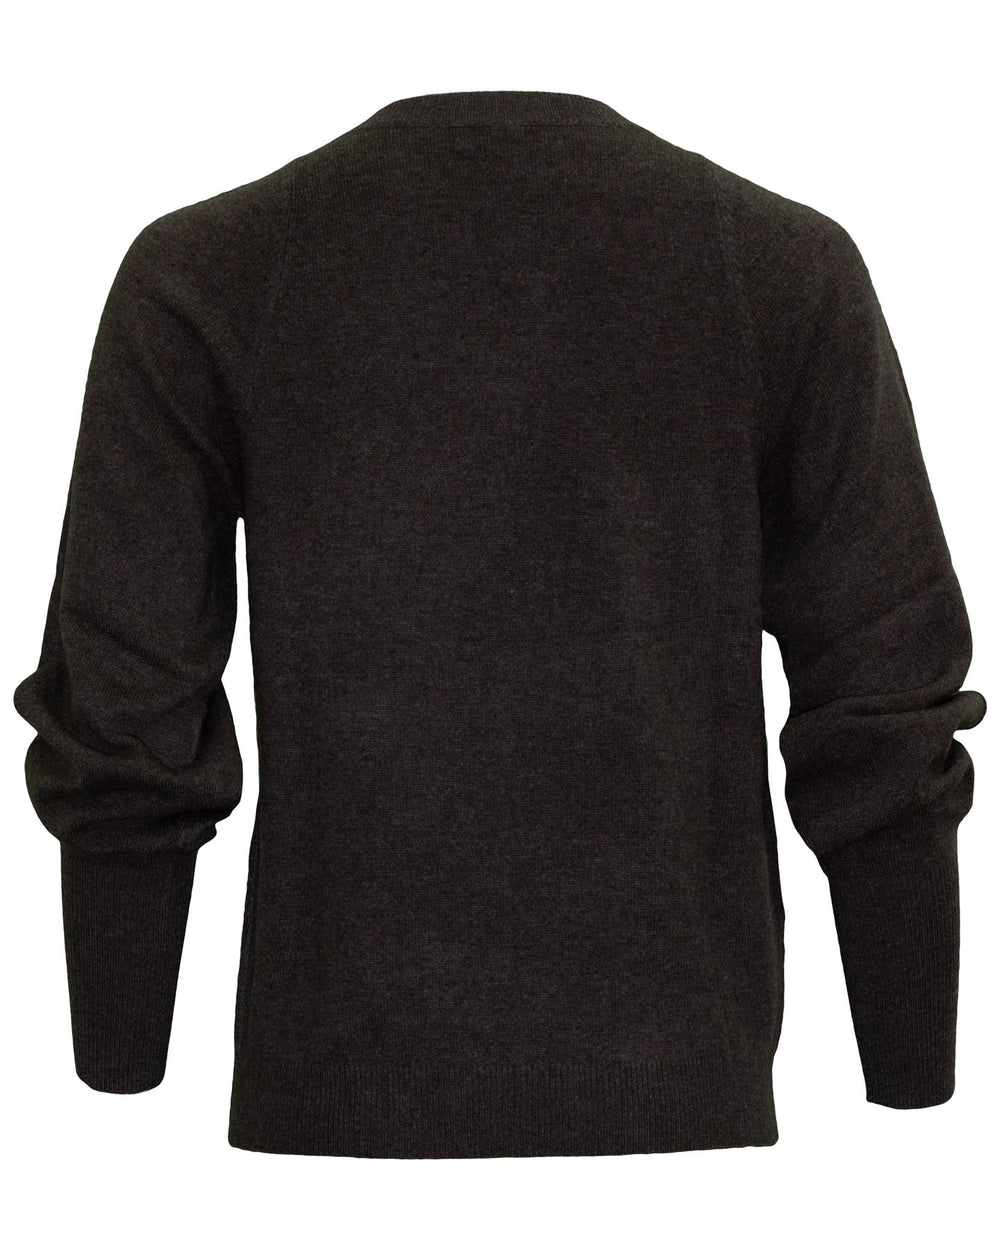 Crewneck Organic Cashmere Knit Brown